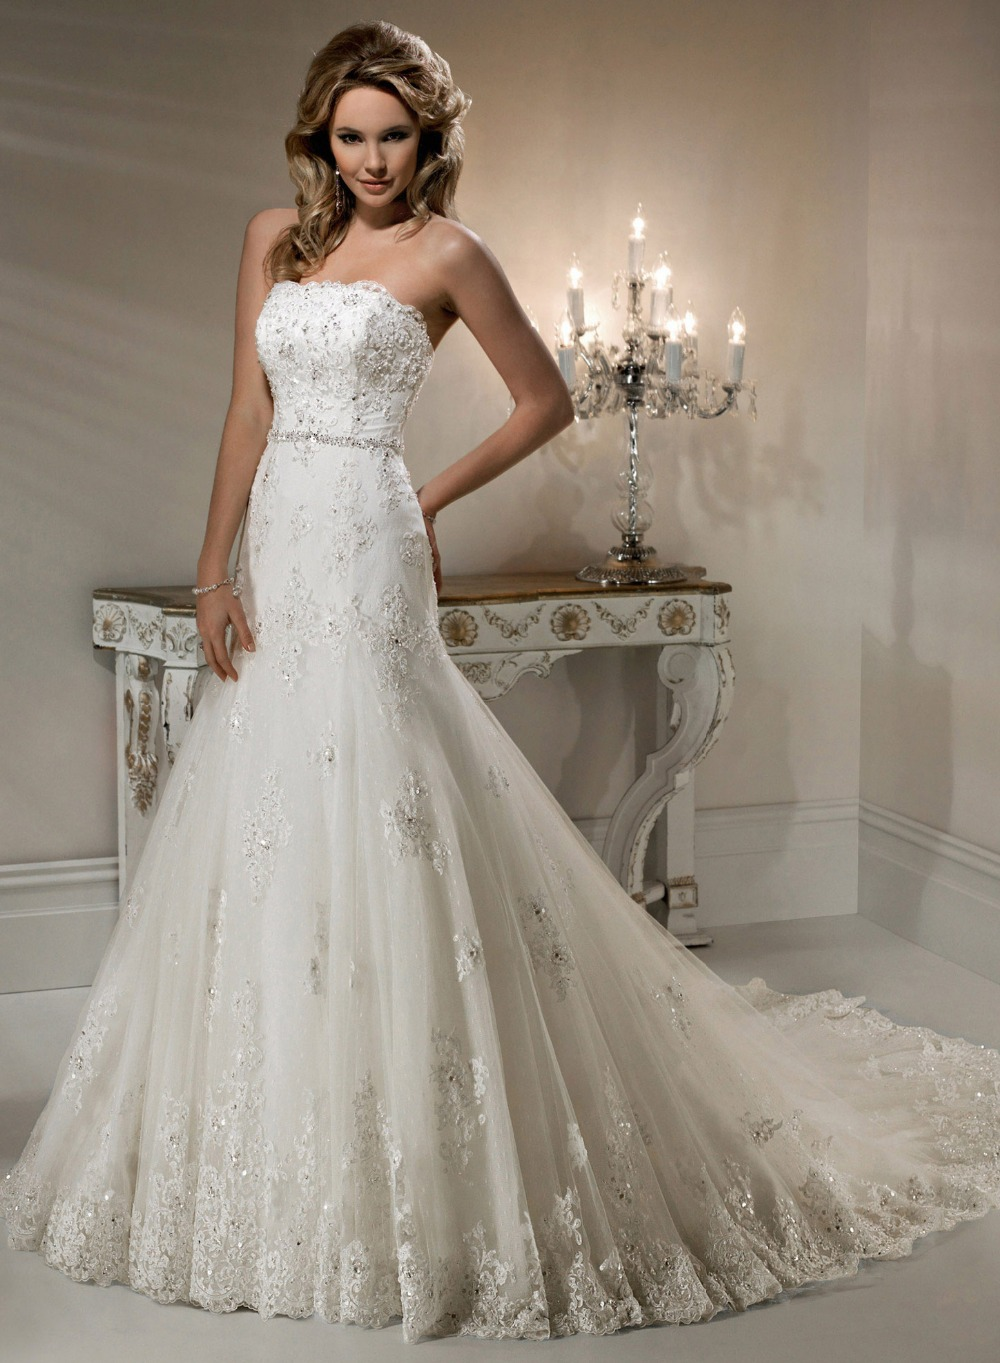 Wedding dresses yw010 hot sale new elegant mermaid bridal for Beading for wedding dress